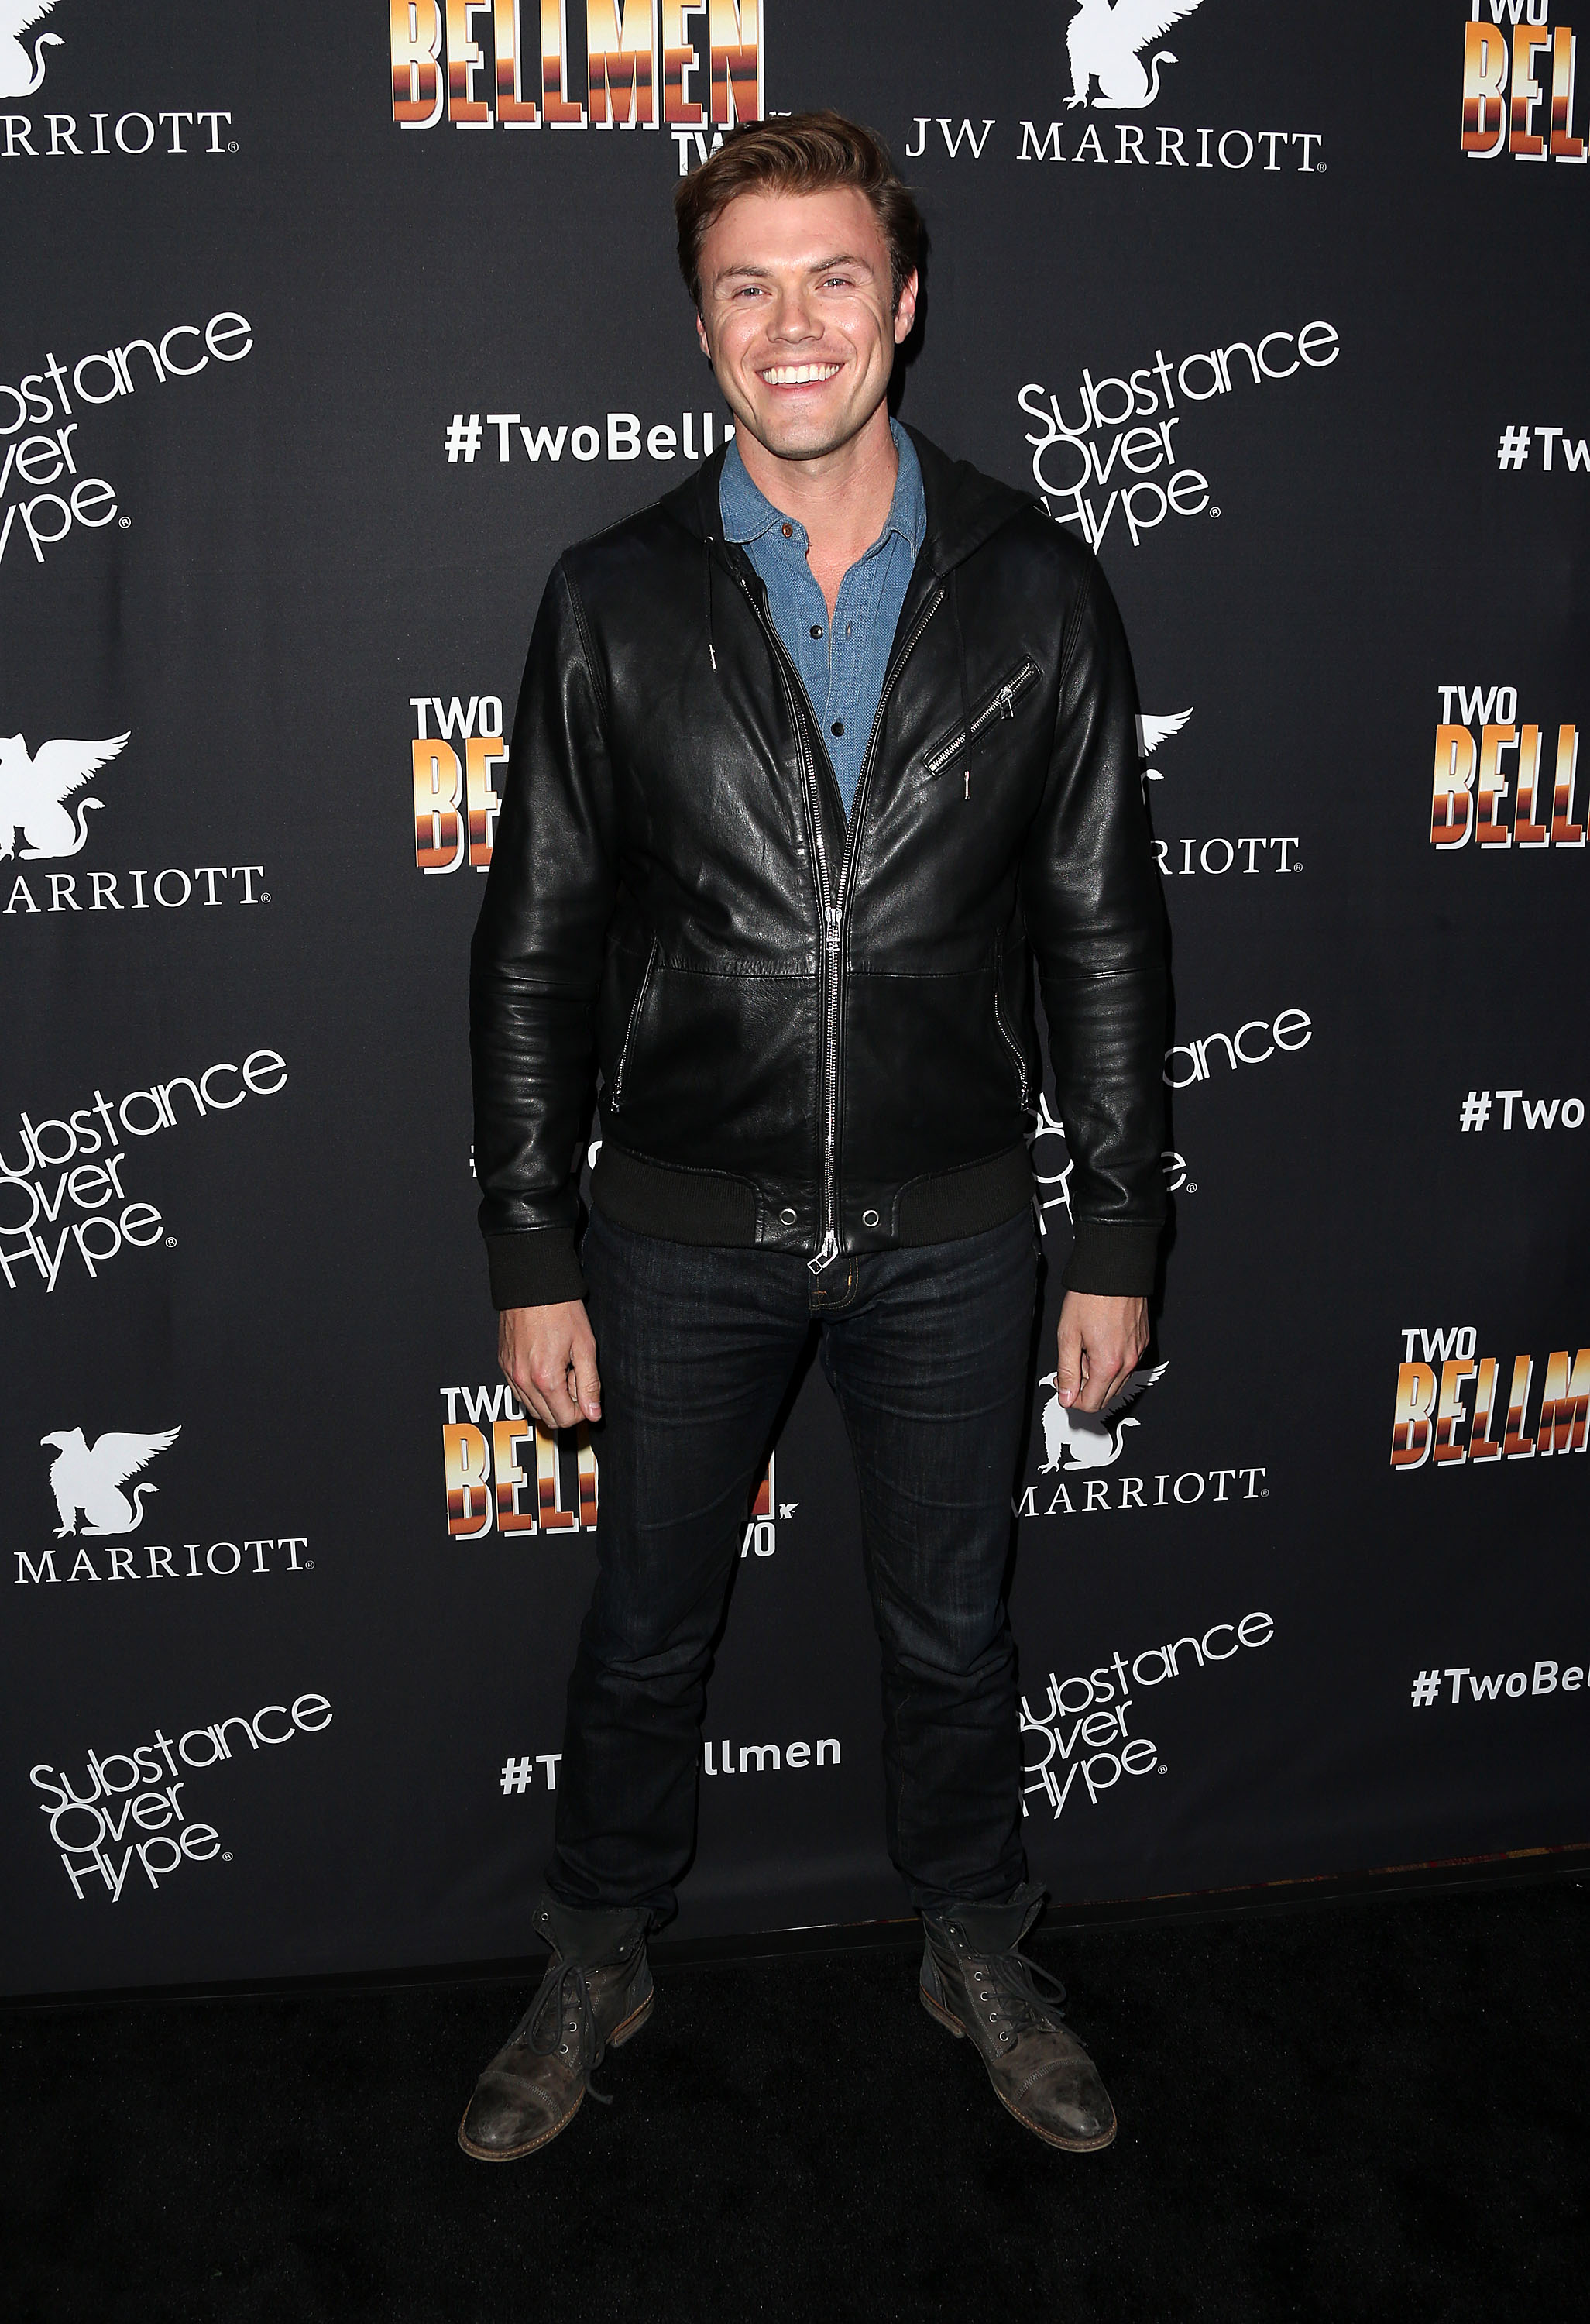 Actor Blake Cooper Griffin attends the Premiere of Substance Over Hype's 'Two Bellmen Two' at the JW Marriott Los Angeles at L.A. LIVE on February 4, 2016 in Los Angeles, California.